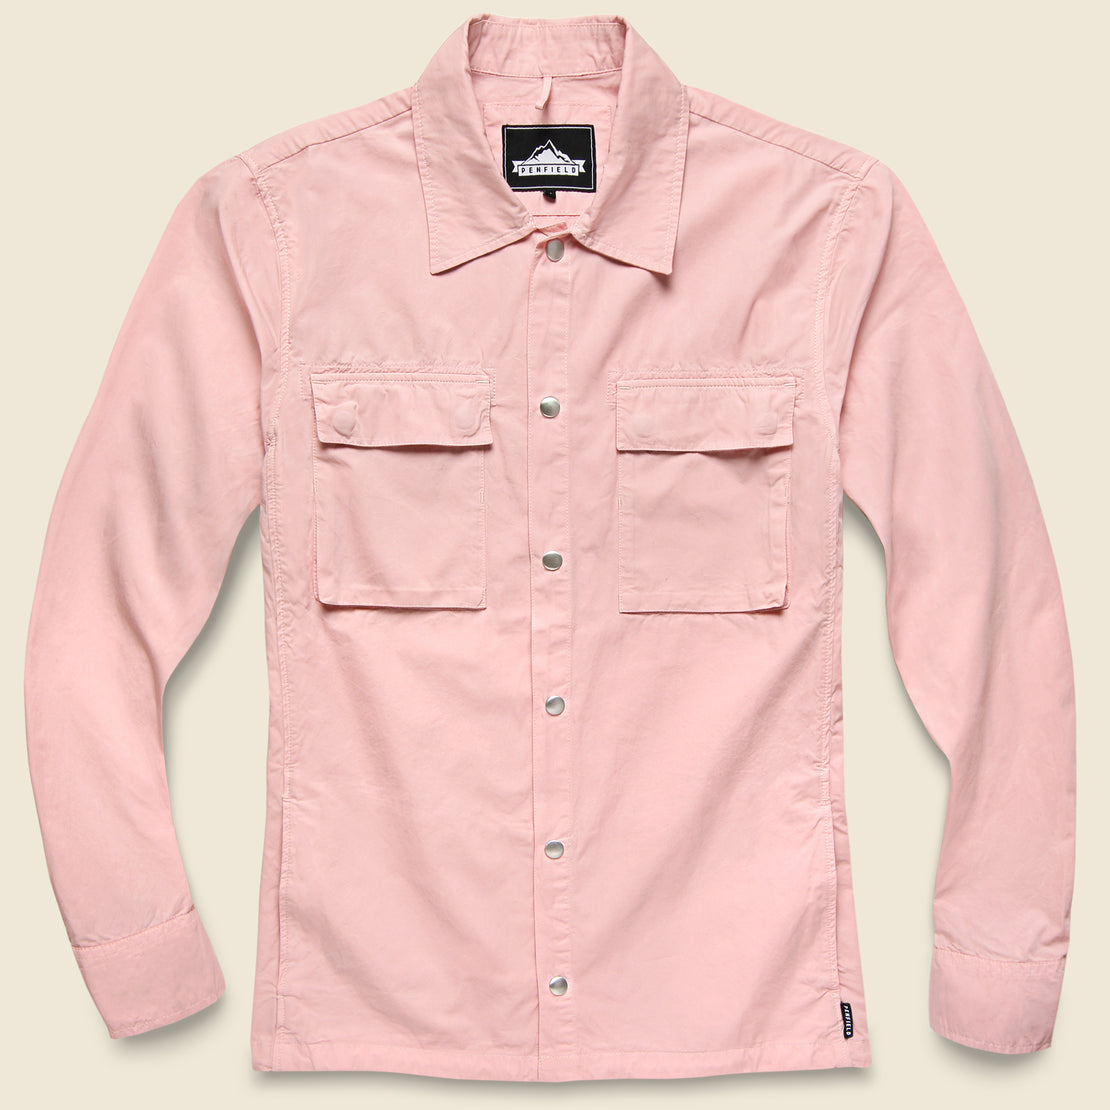 Penfield Oakledge Overshirt - Orchid